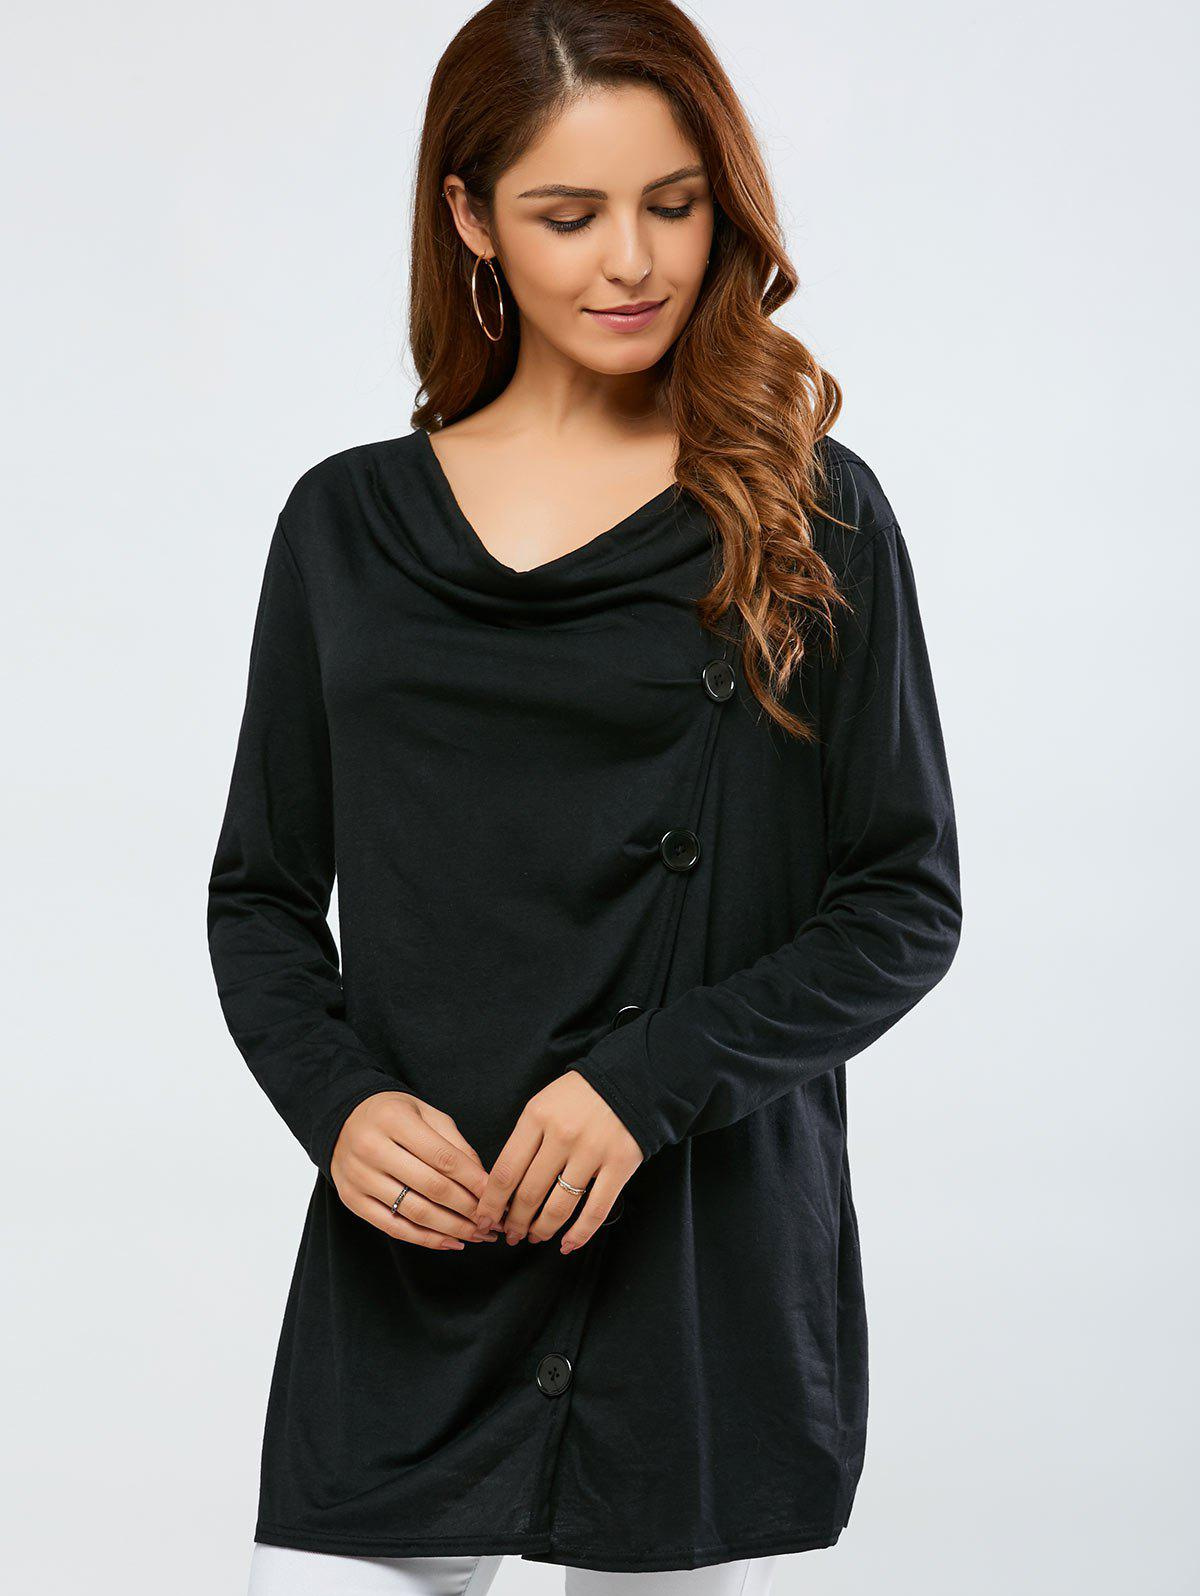 Cowl Neck One Breasted T-Shirt - BLACK XL